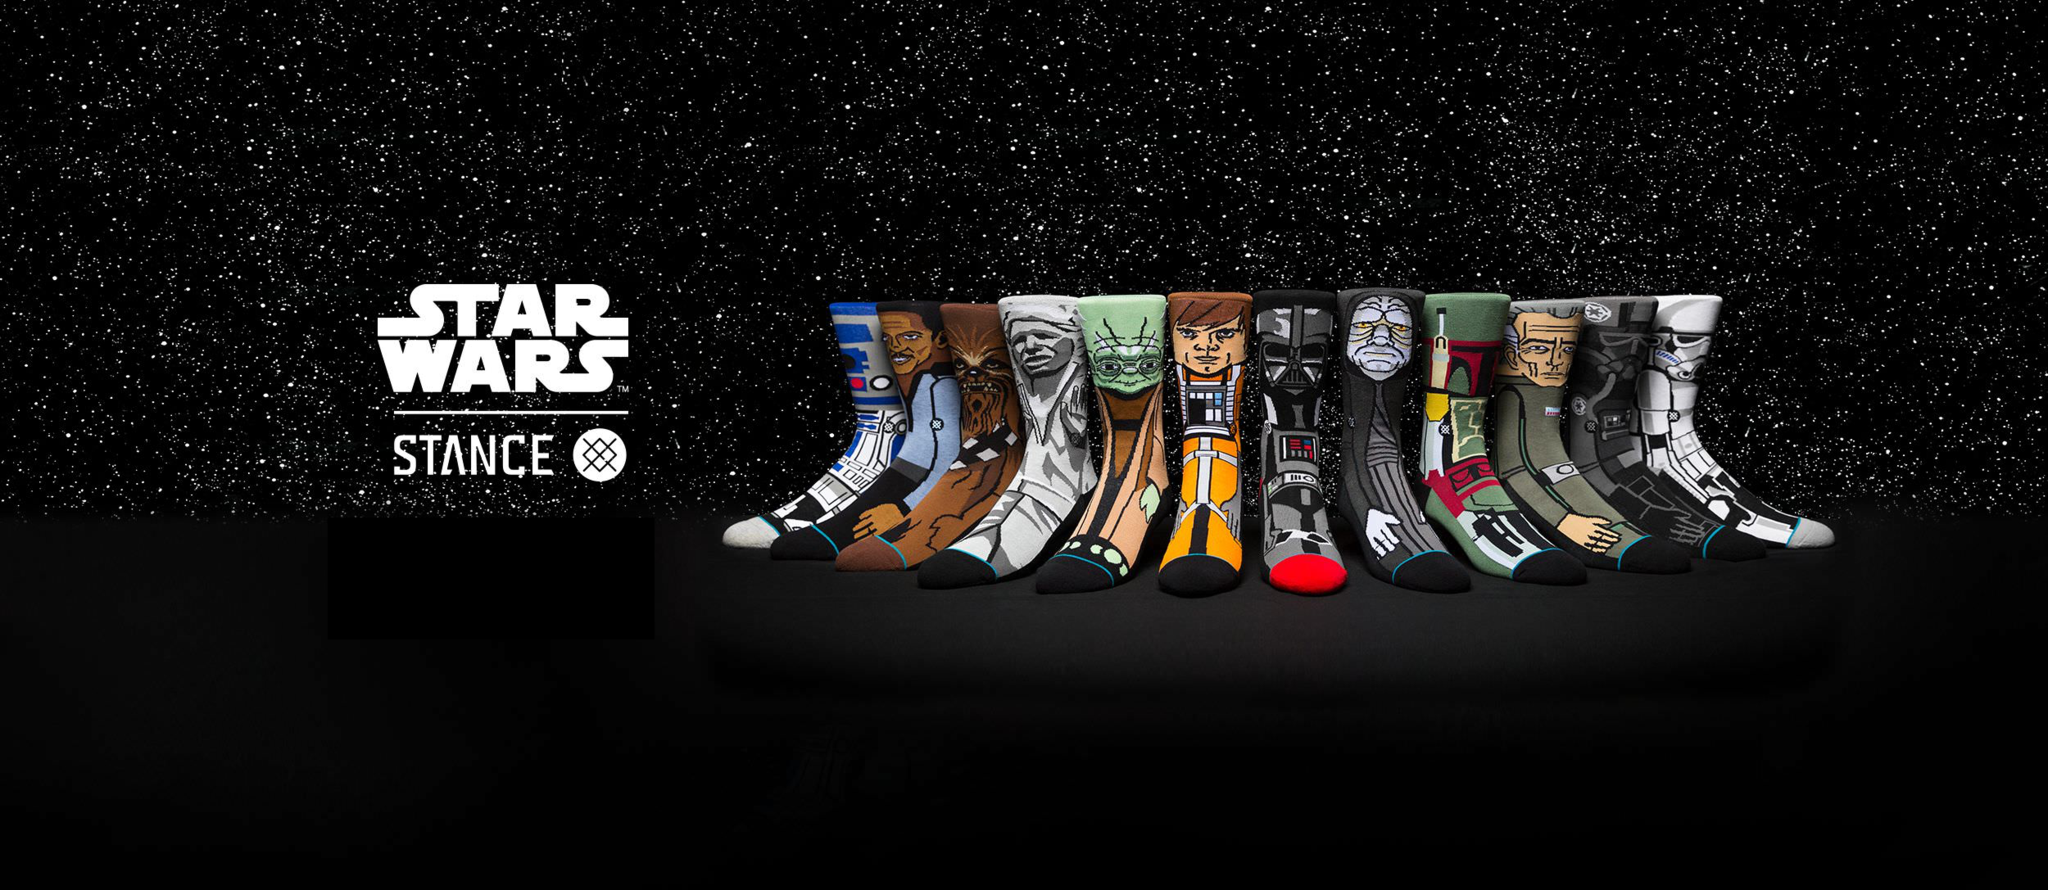 Star Wars has Arrived at Sock Life!